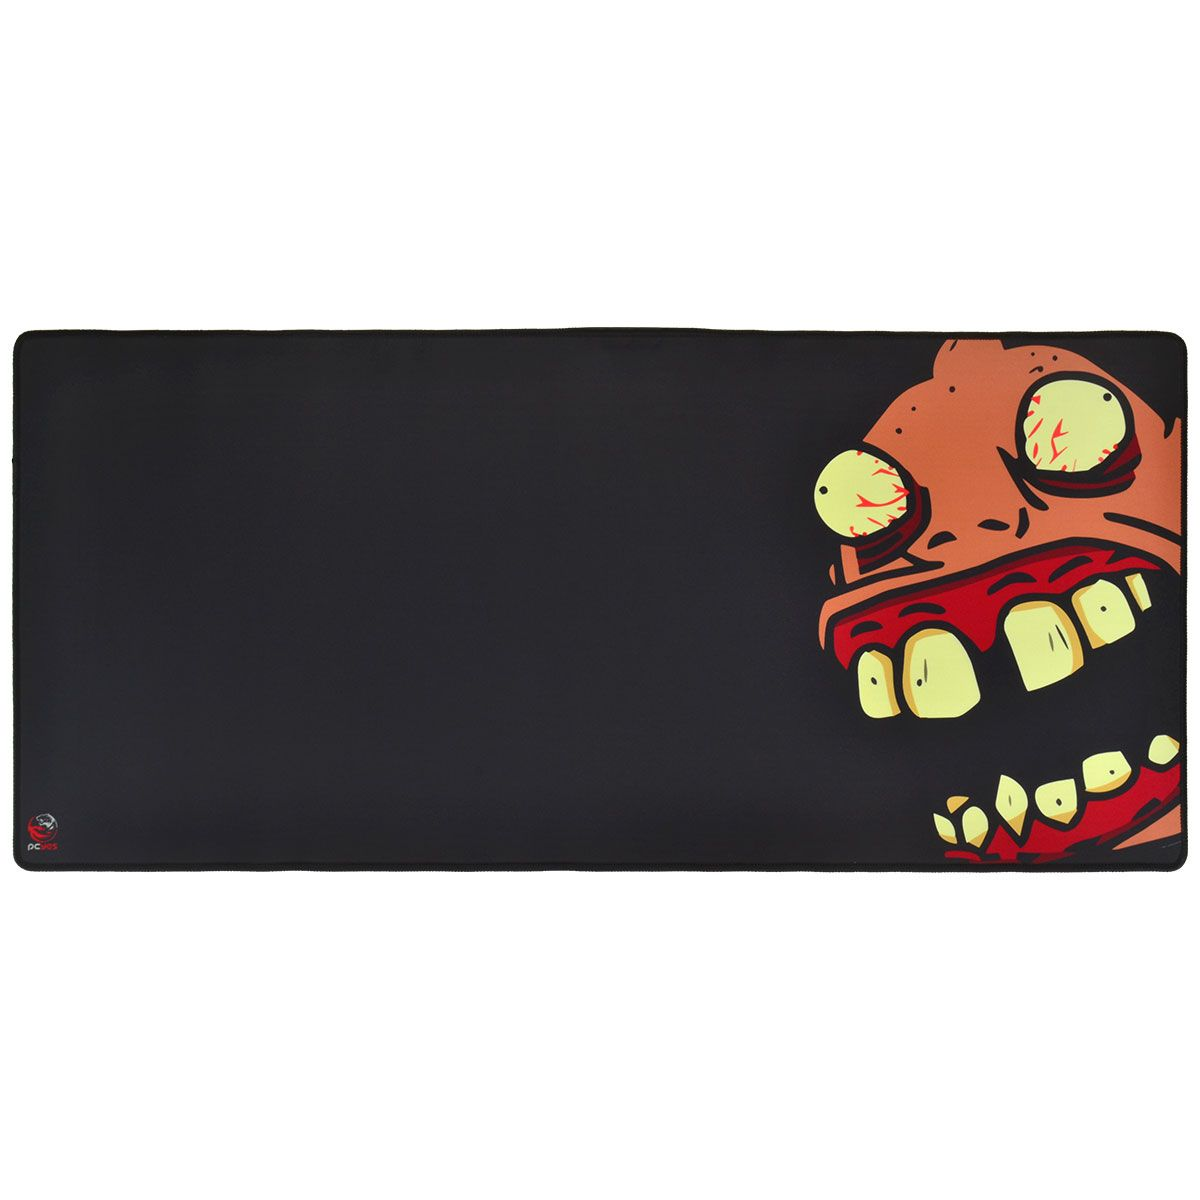 MOUSE PAD HUEBR PRETO EXTENDED 900X420MM - HPE90X42